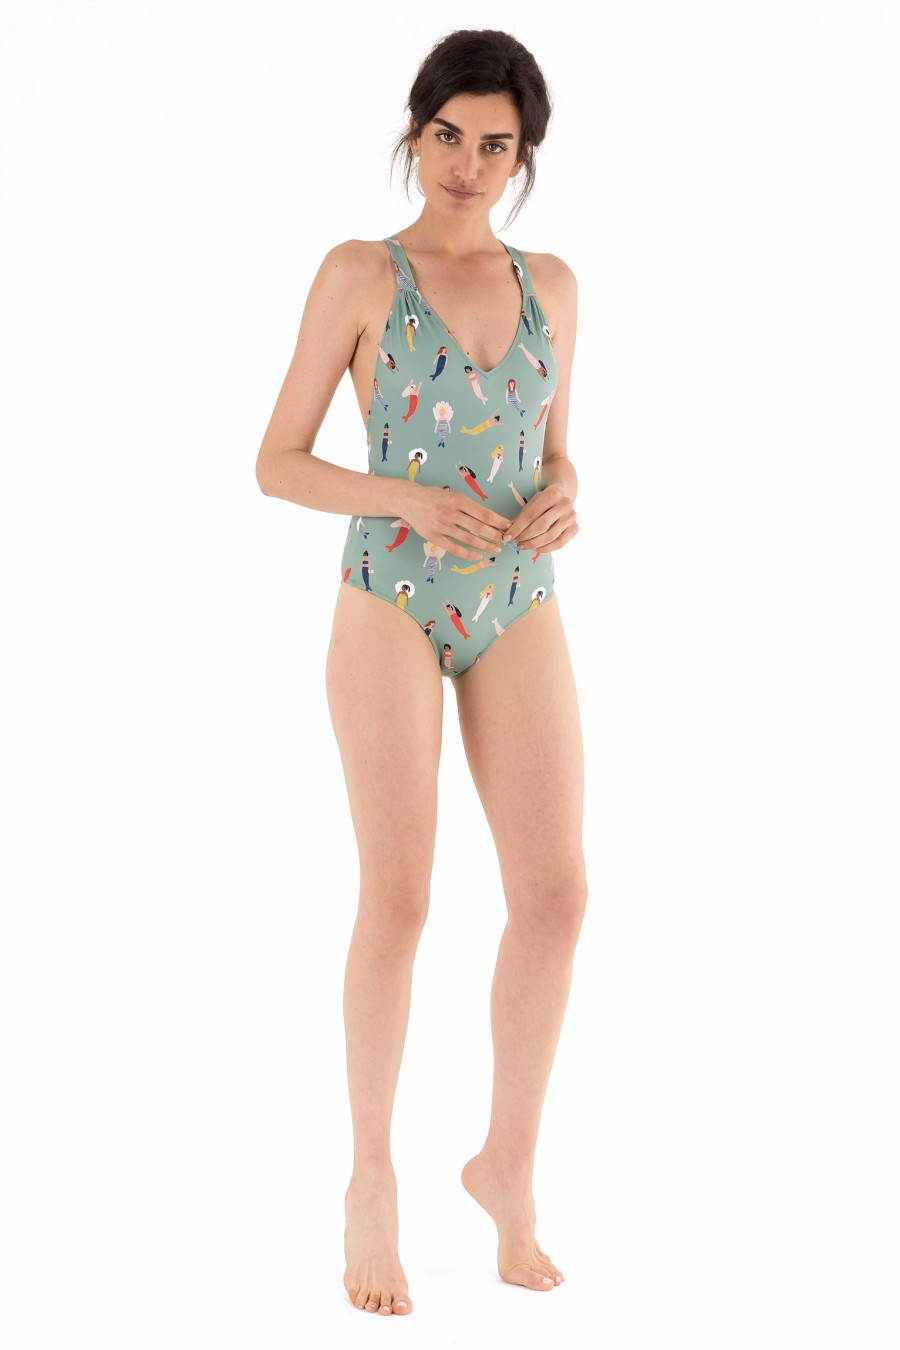 One-piece swimsuit illustrated by Kate Pugsley